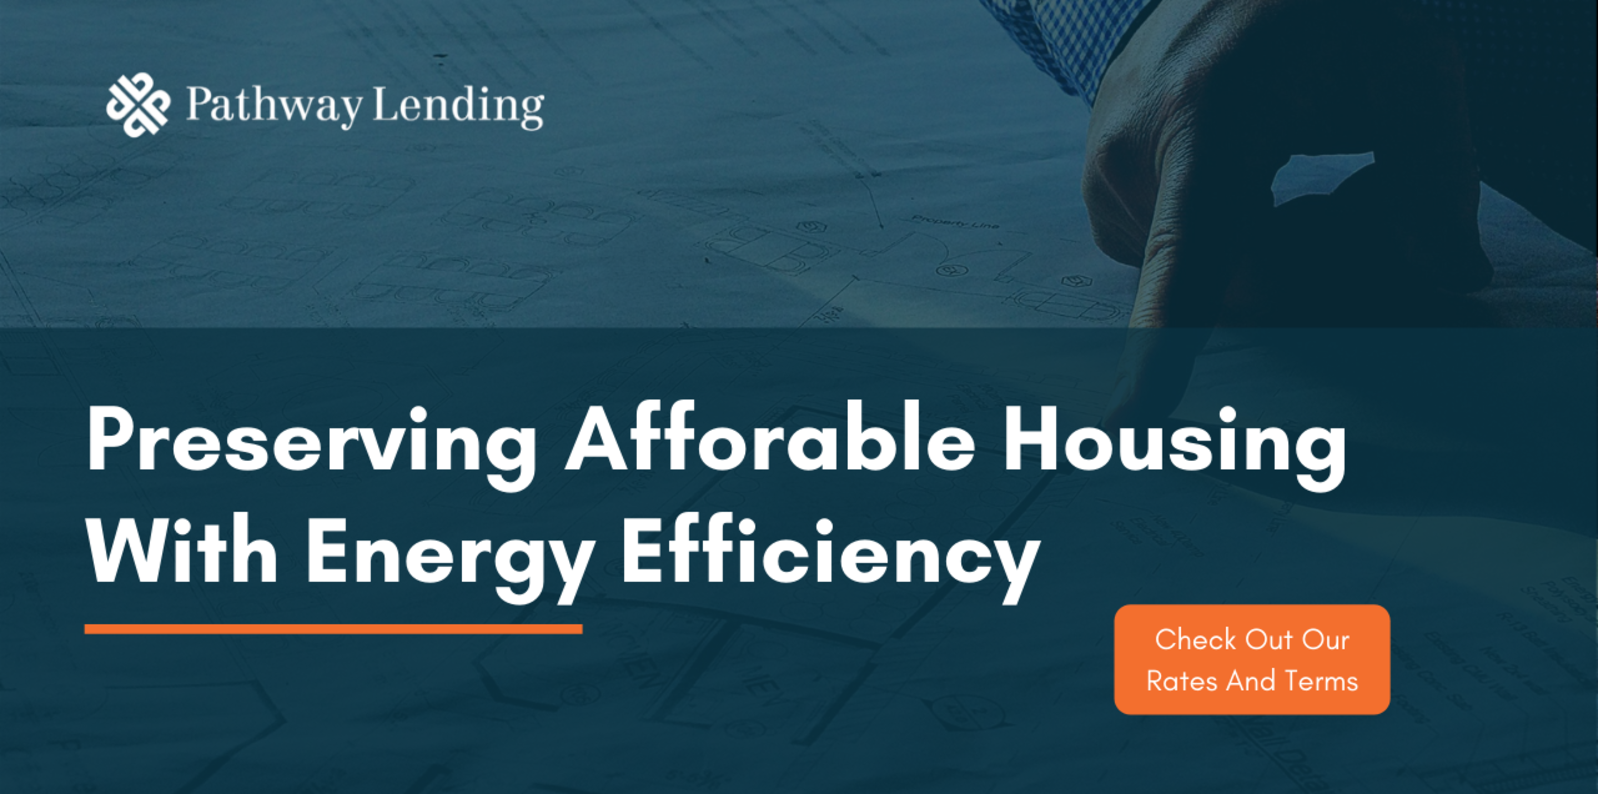 Preserving Affordable Housing With Energy Efficiency   Pathway Lending